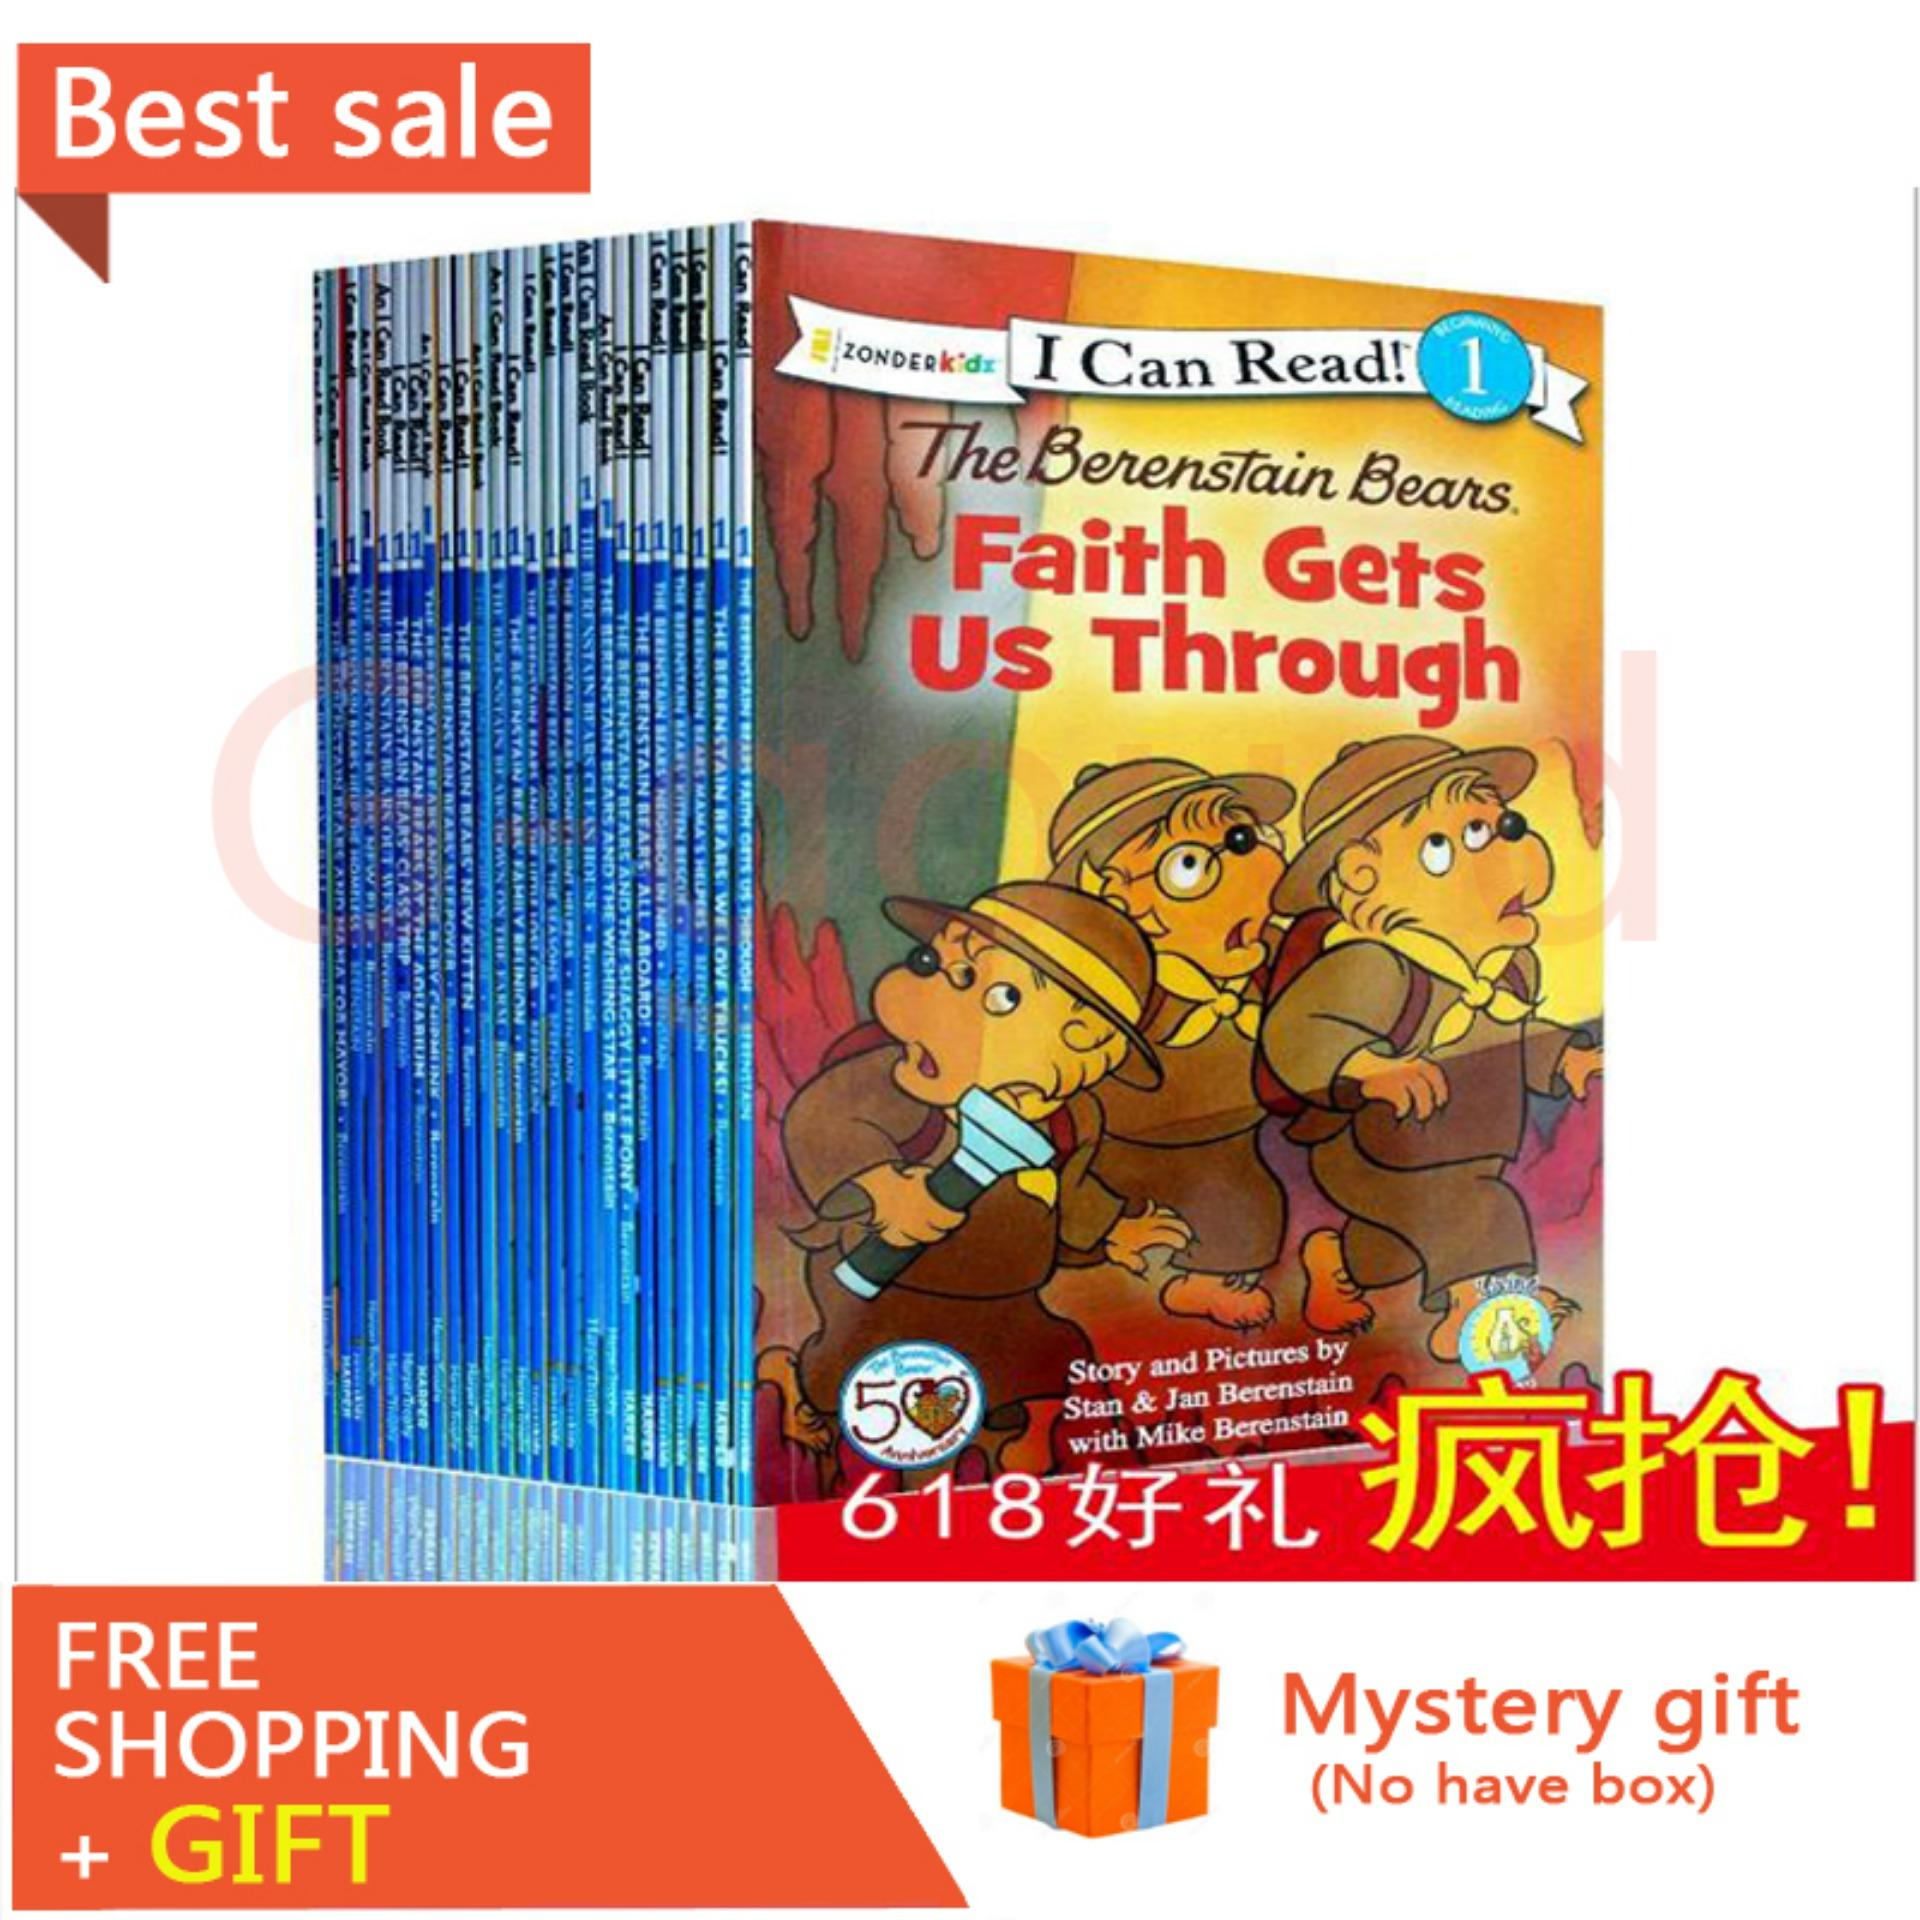 English picture book Beibei Xiong The Berenstain Bears 25 volumes Childrens English story